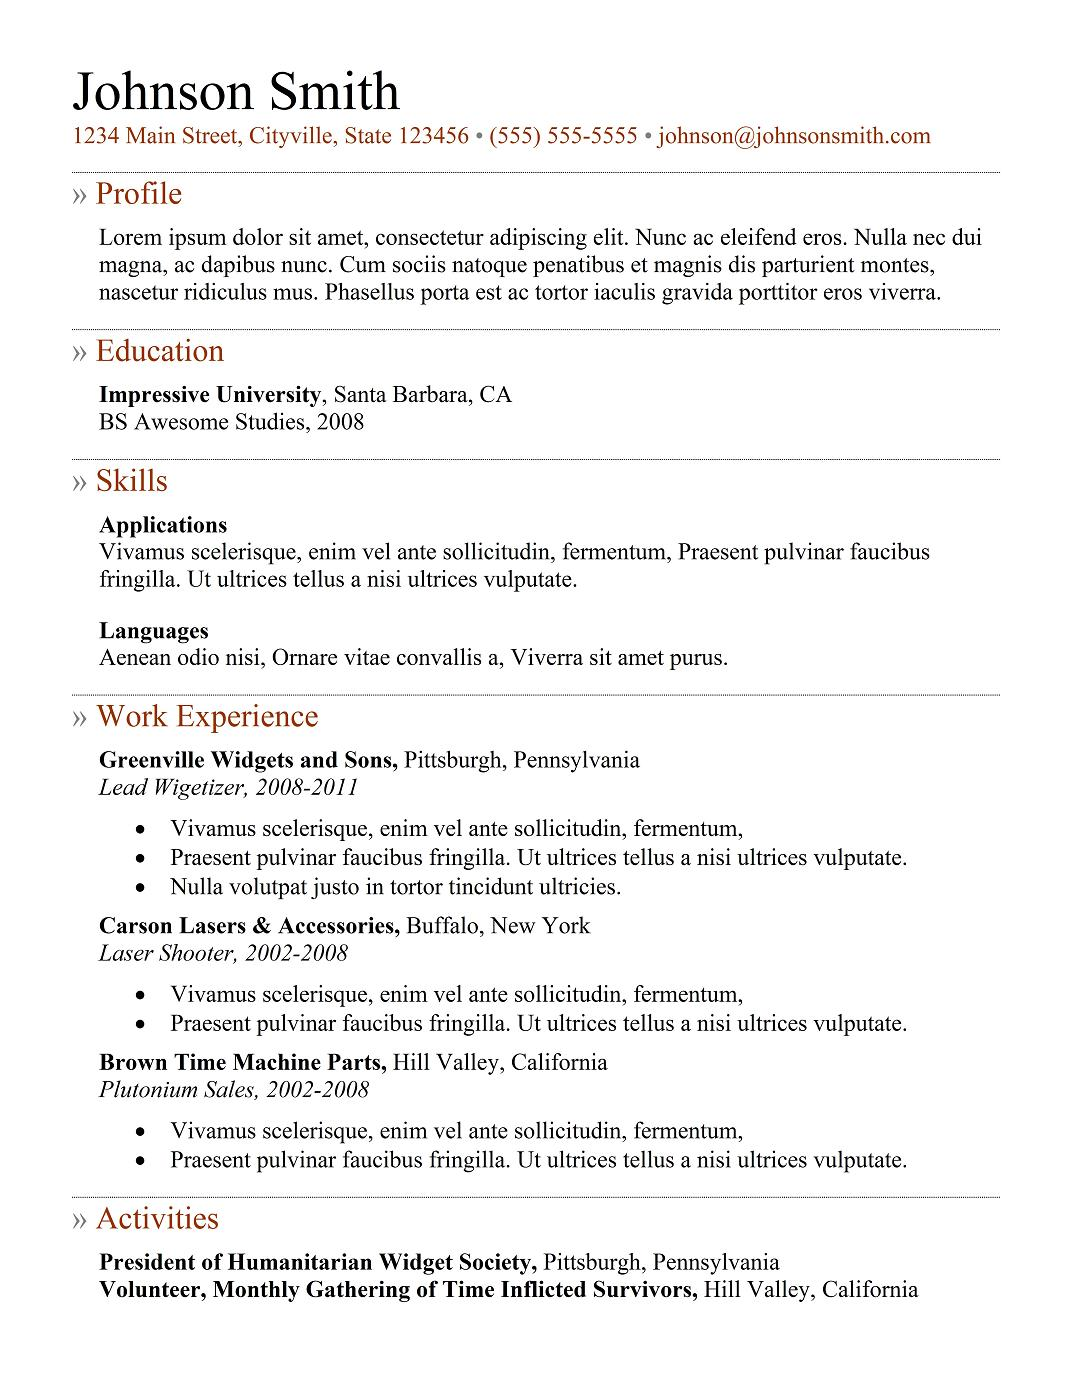 simple resume format in doc sample customer service resume simple resume format in doc the basic resume template in pdf word excel format are professional